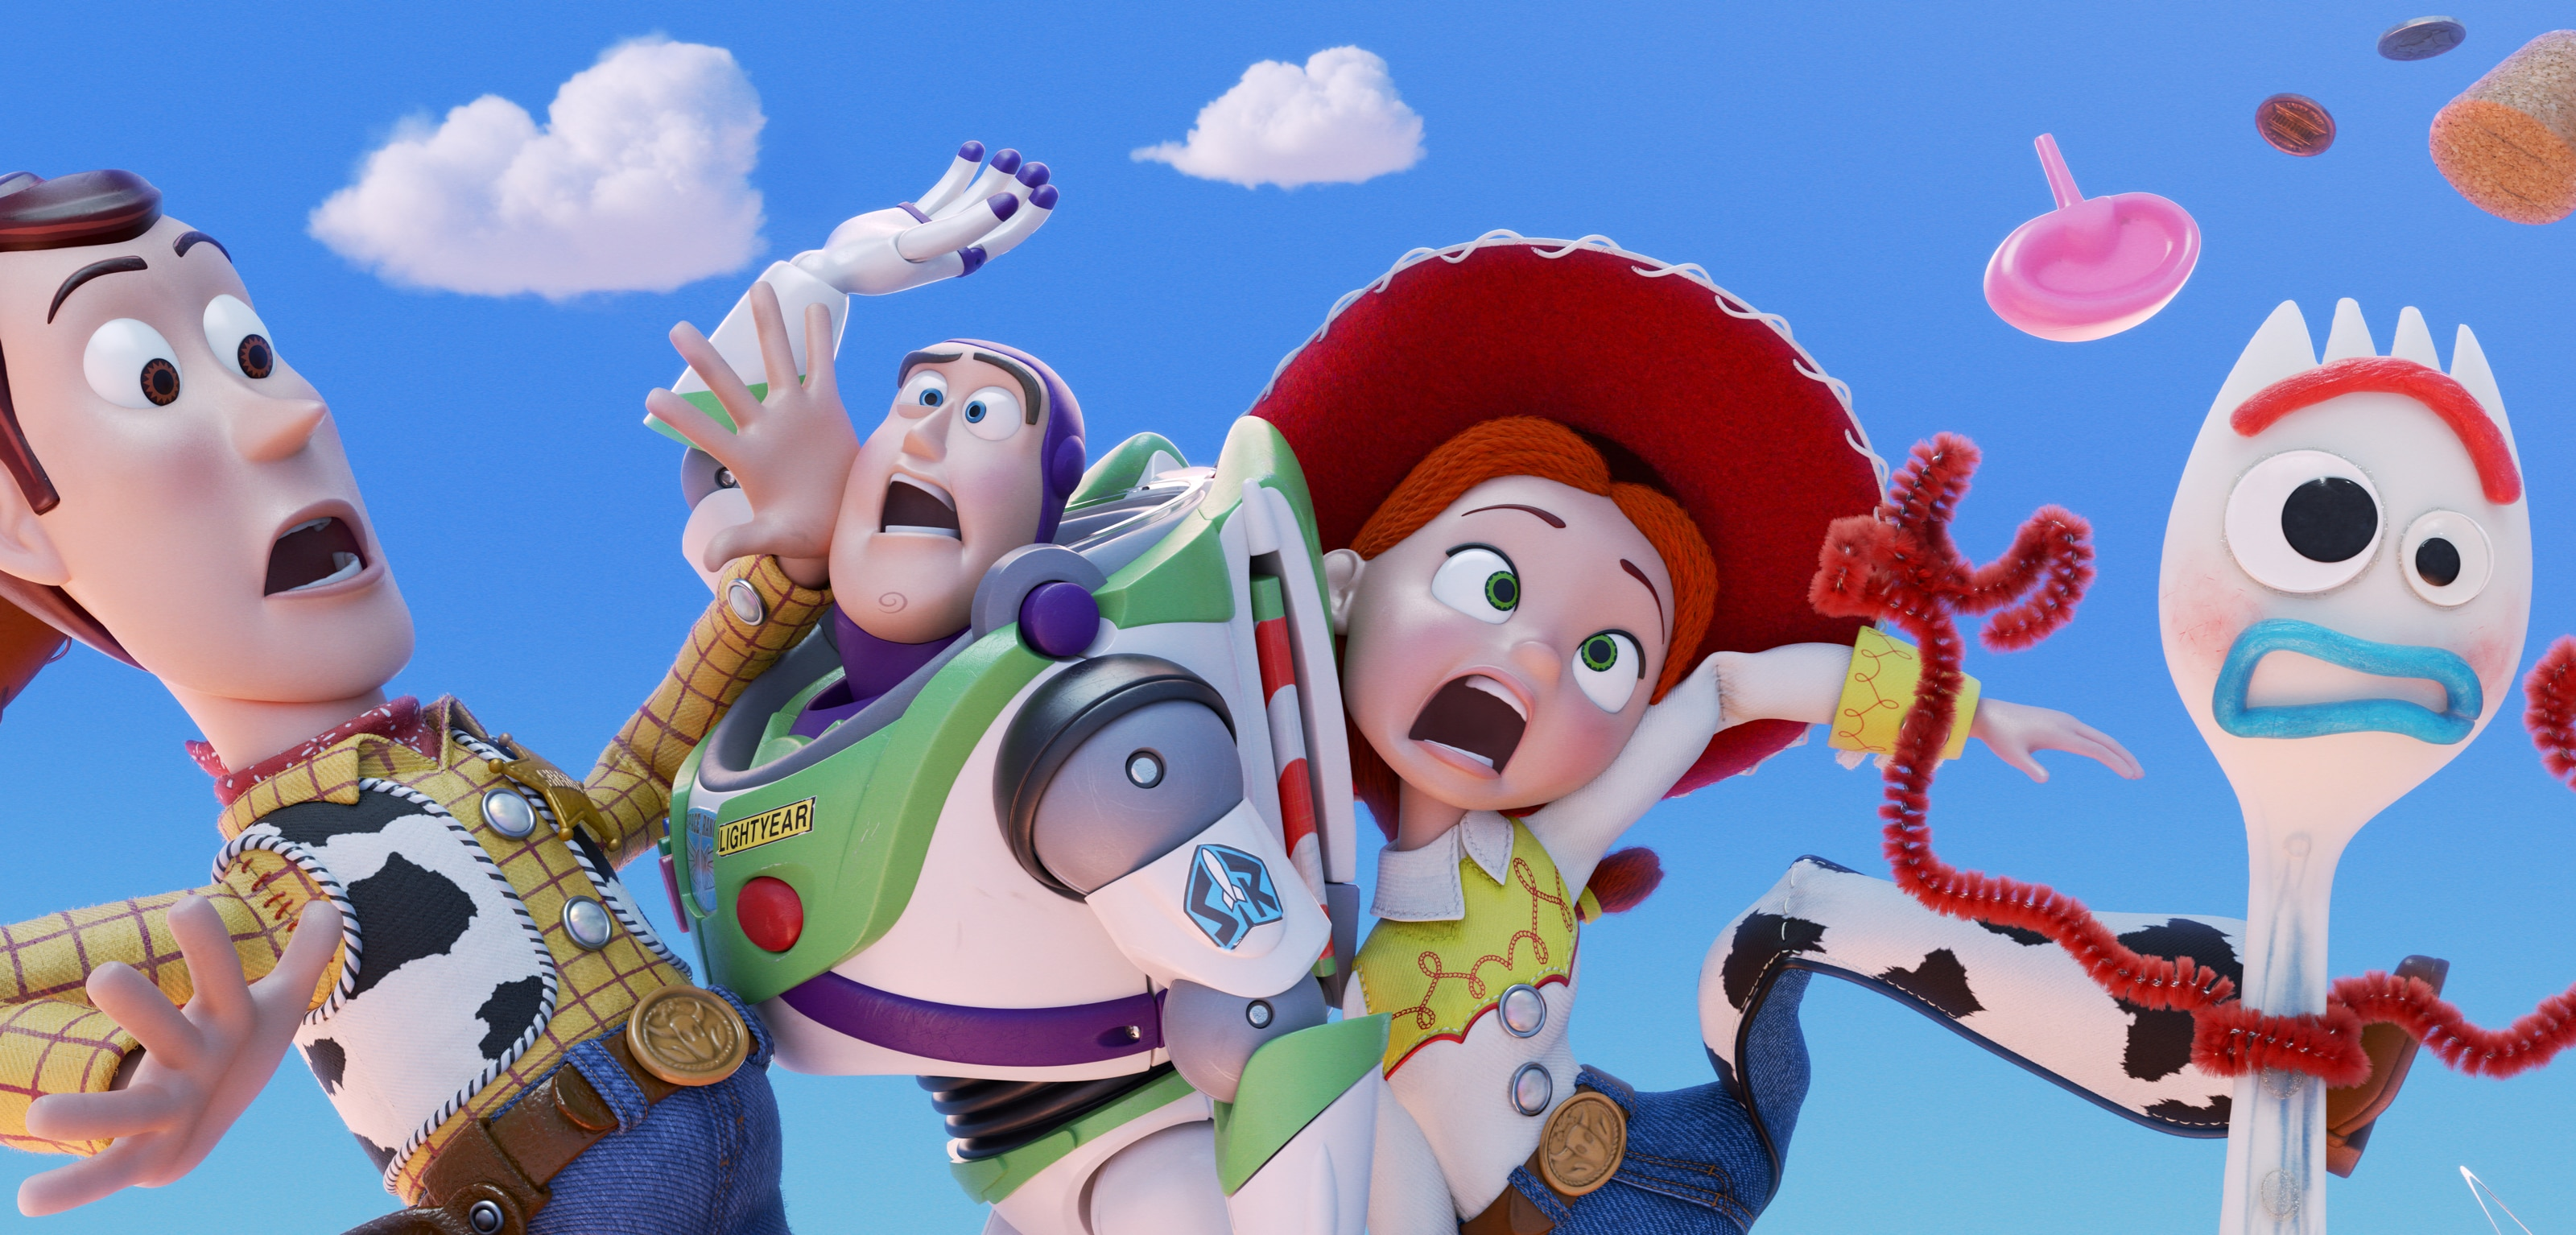 A still image from Toy Story 4